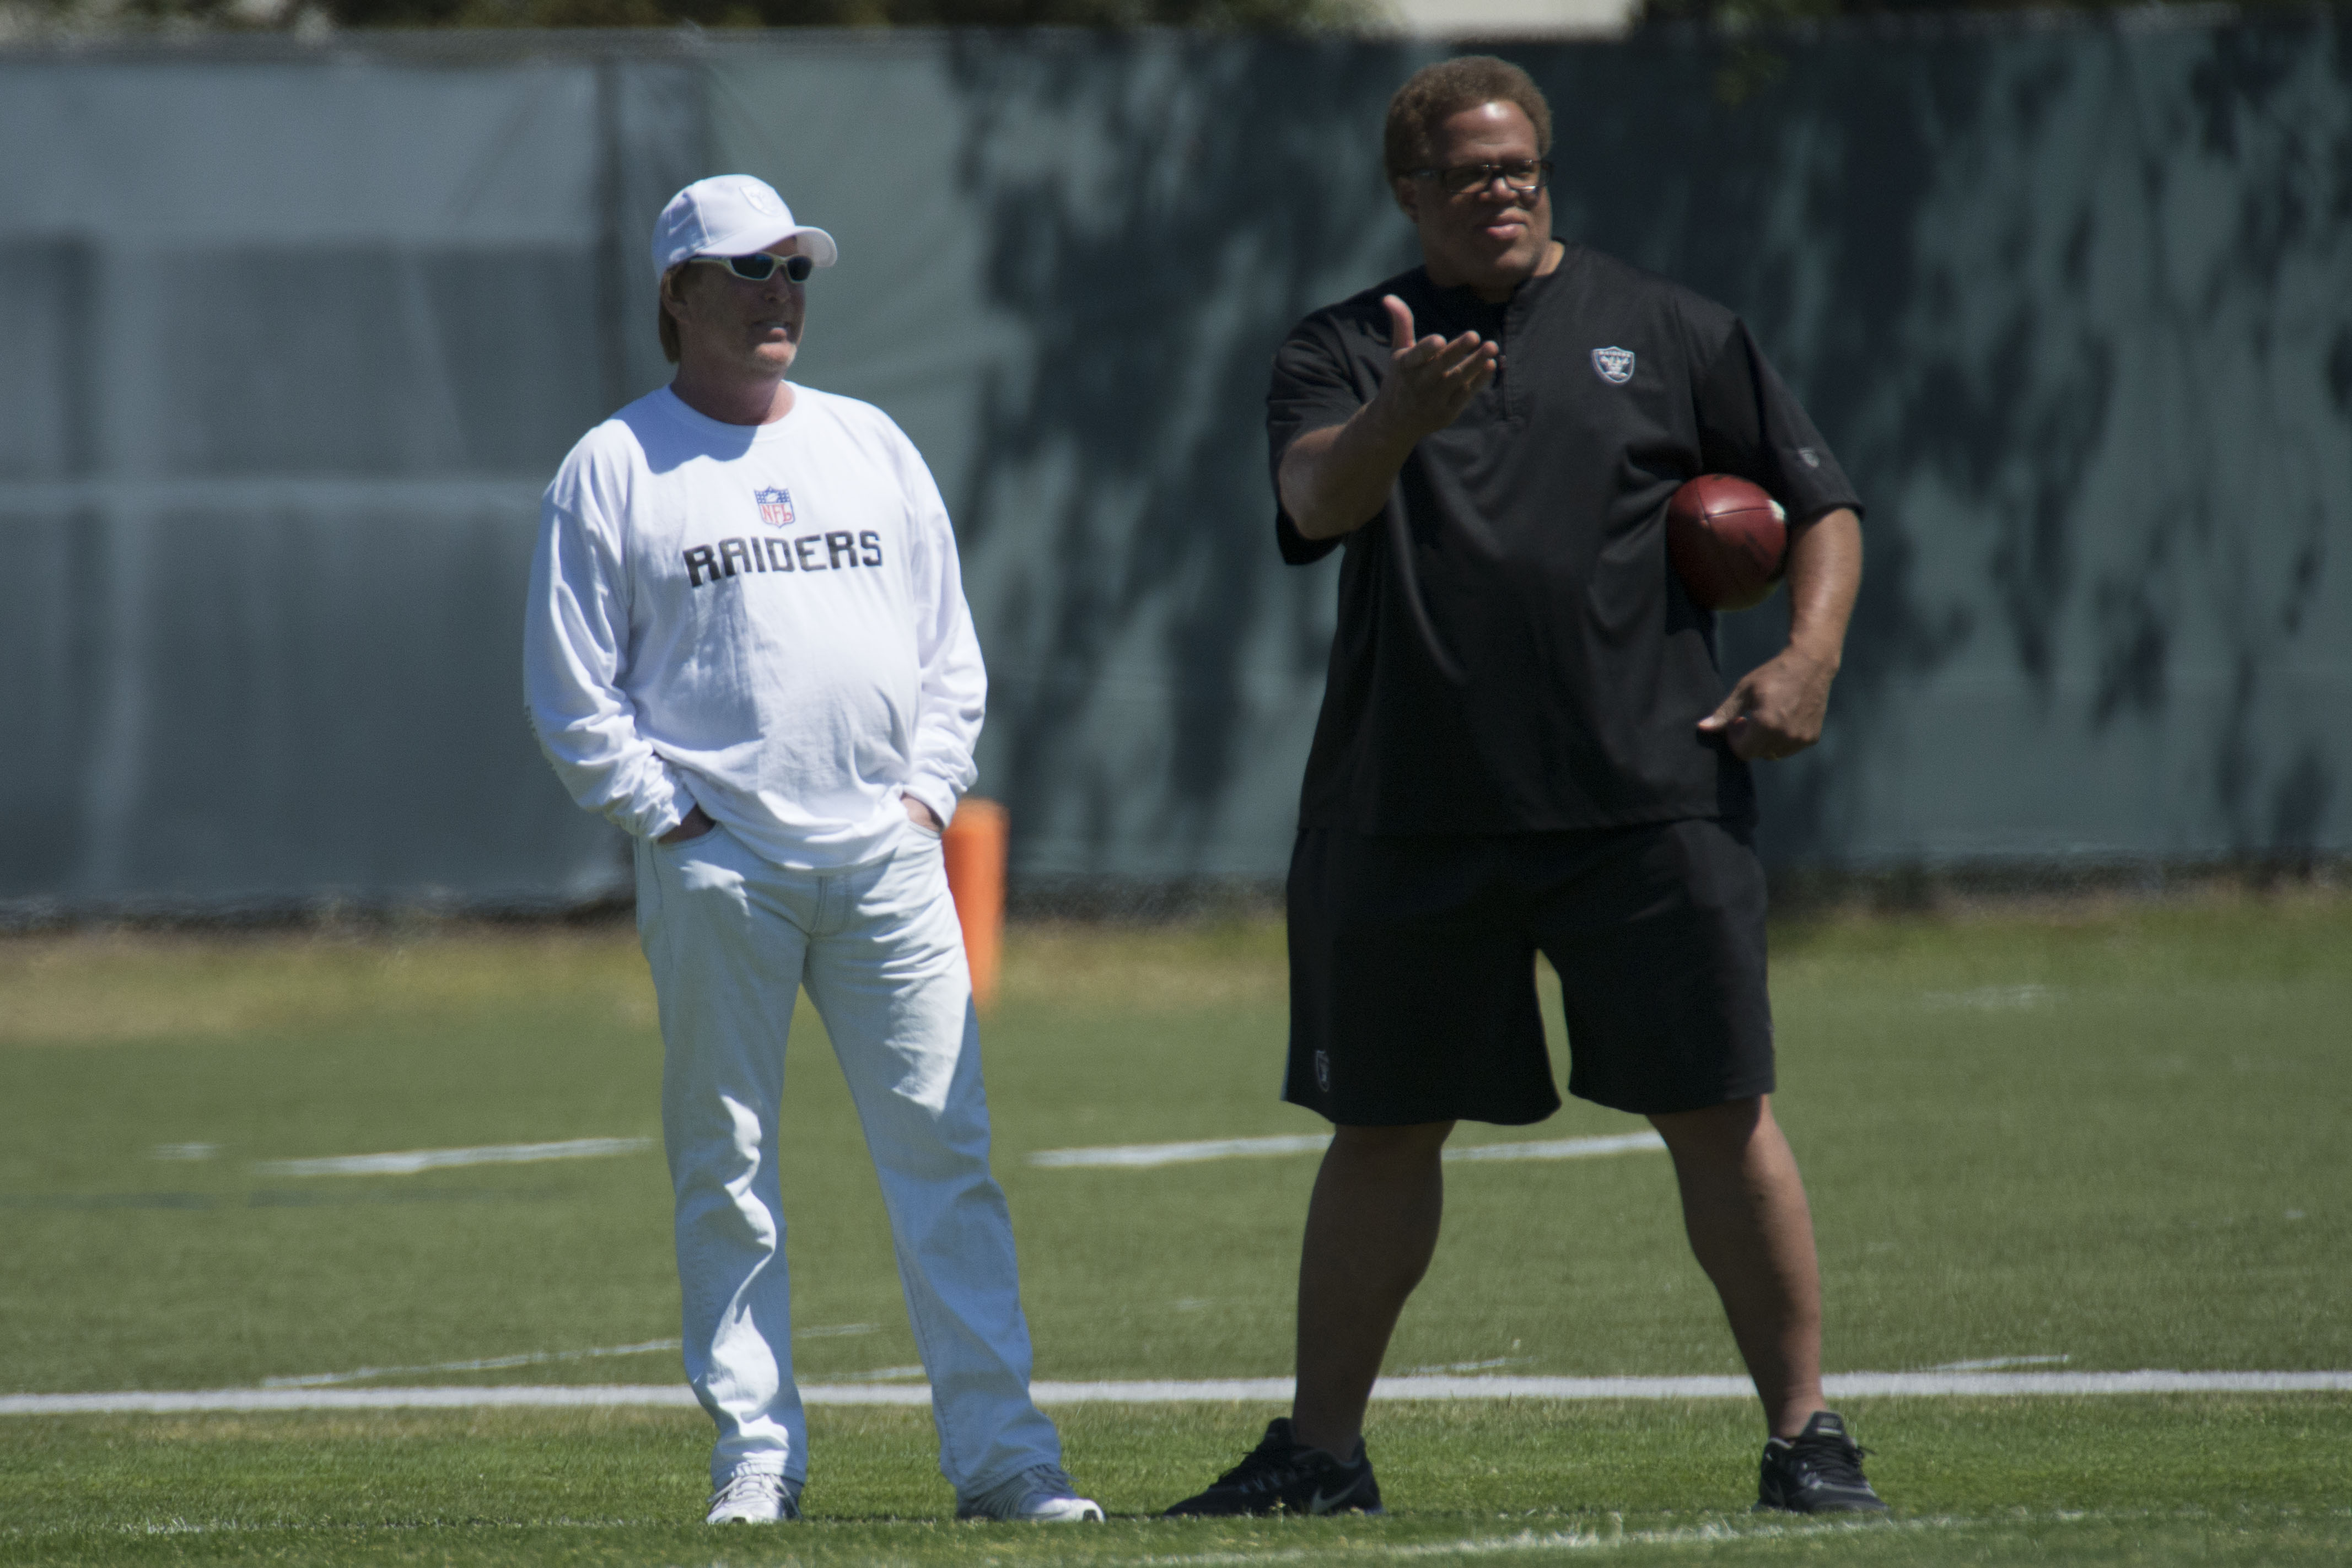 Raiders owner Mark Davis (L) talks to GM Reggie McKenzie (R) during rookie minicamp. (USA Today)